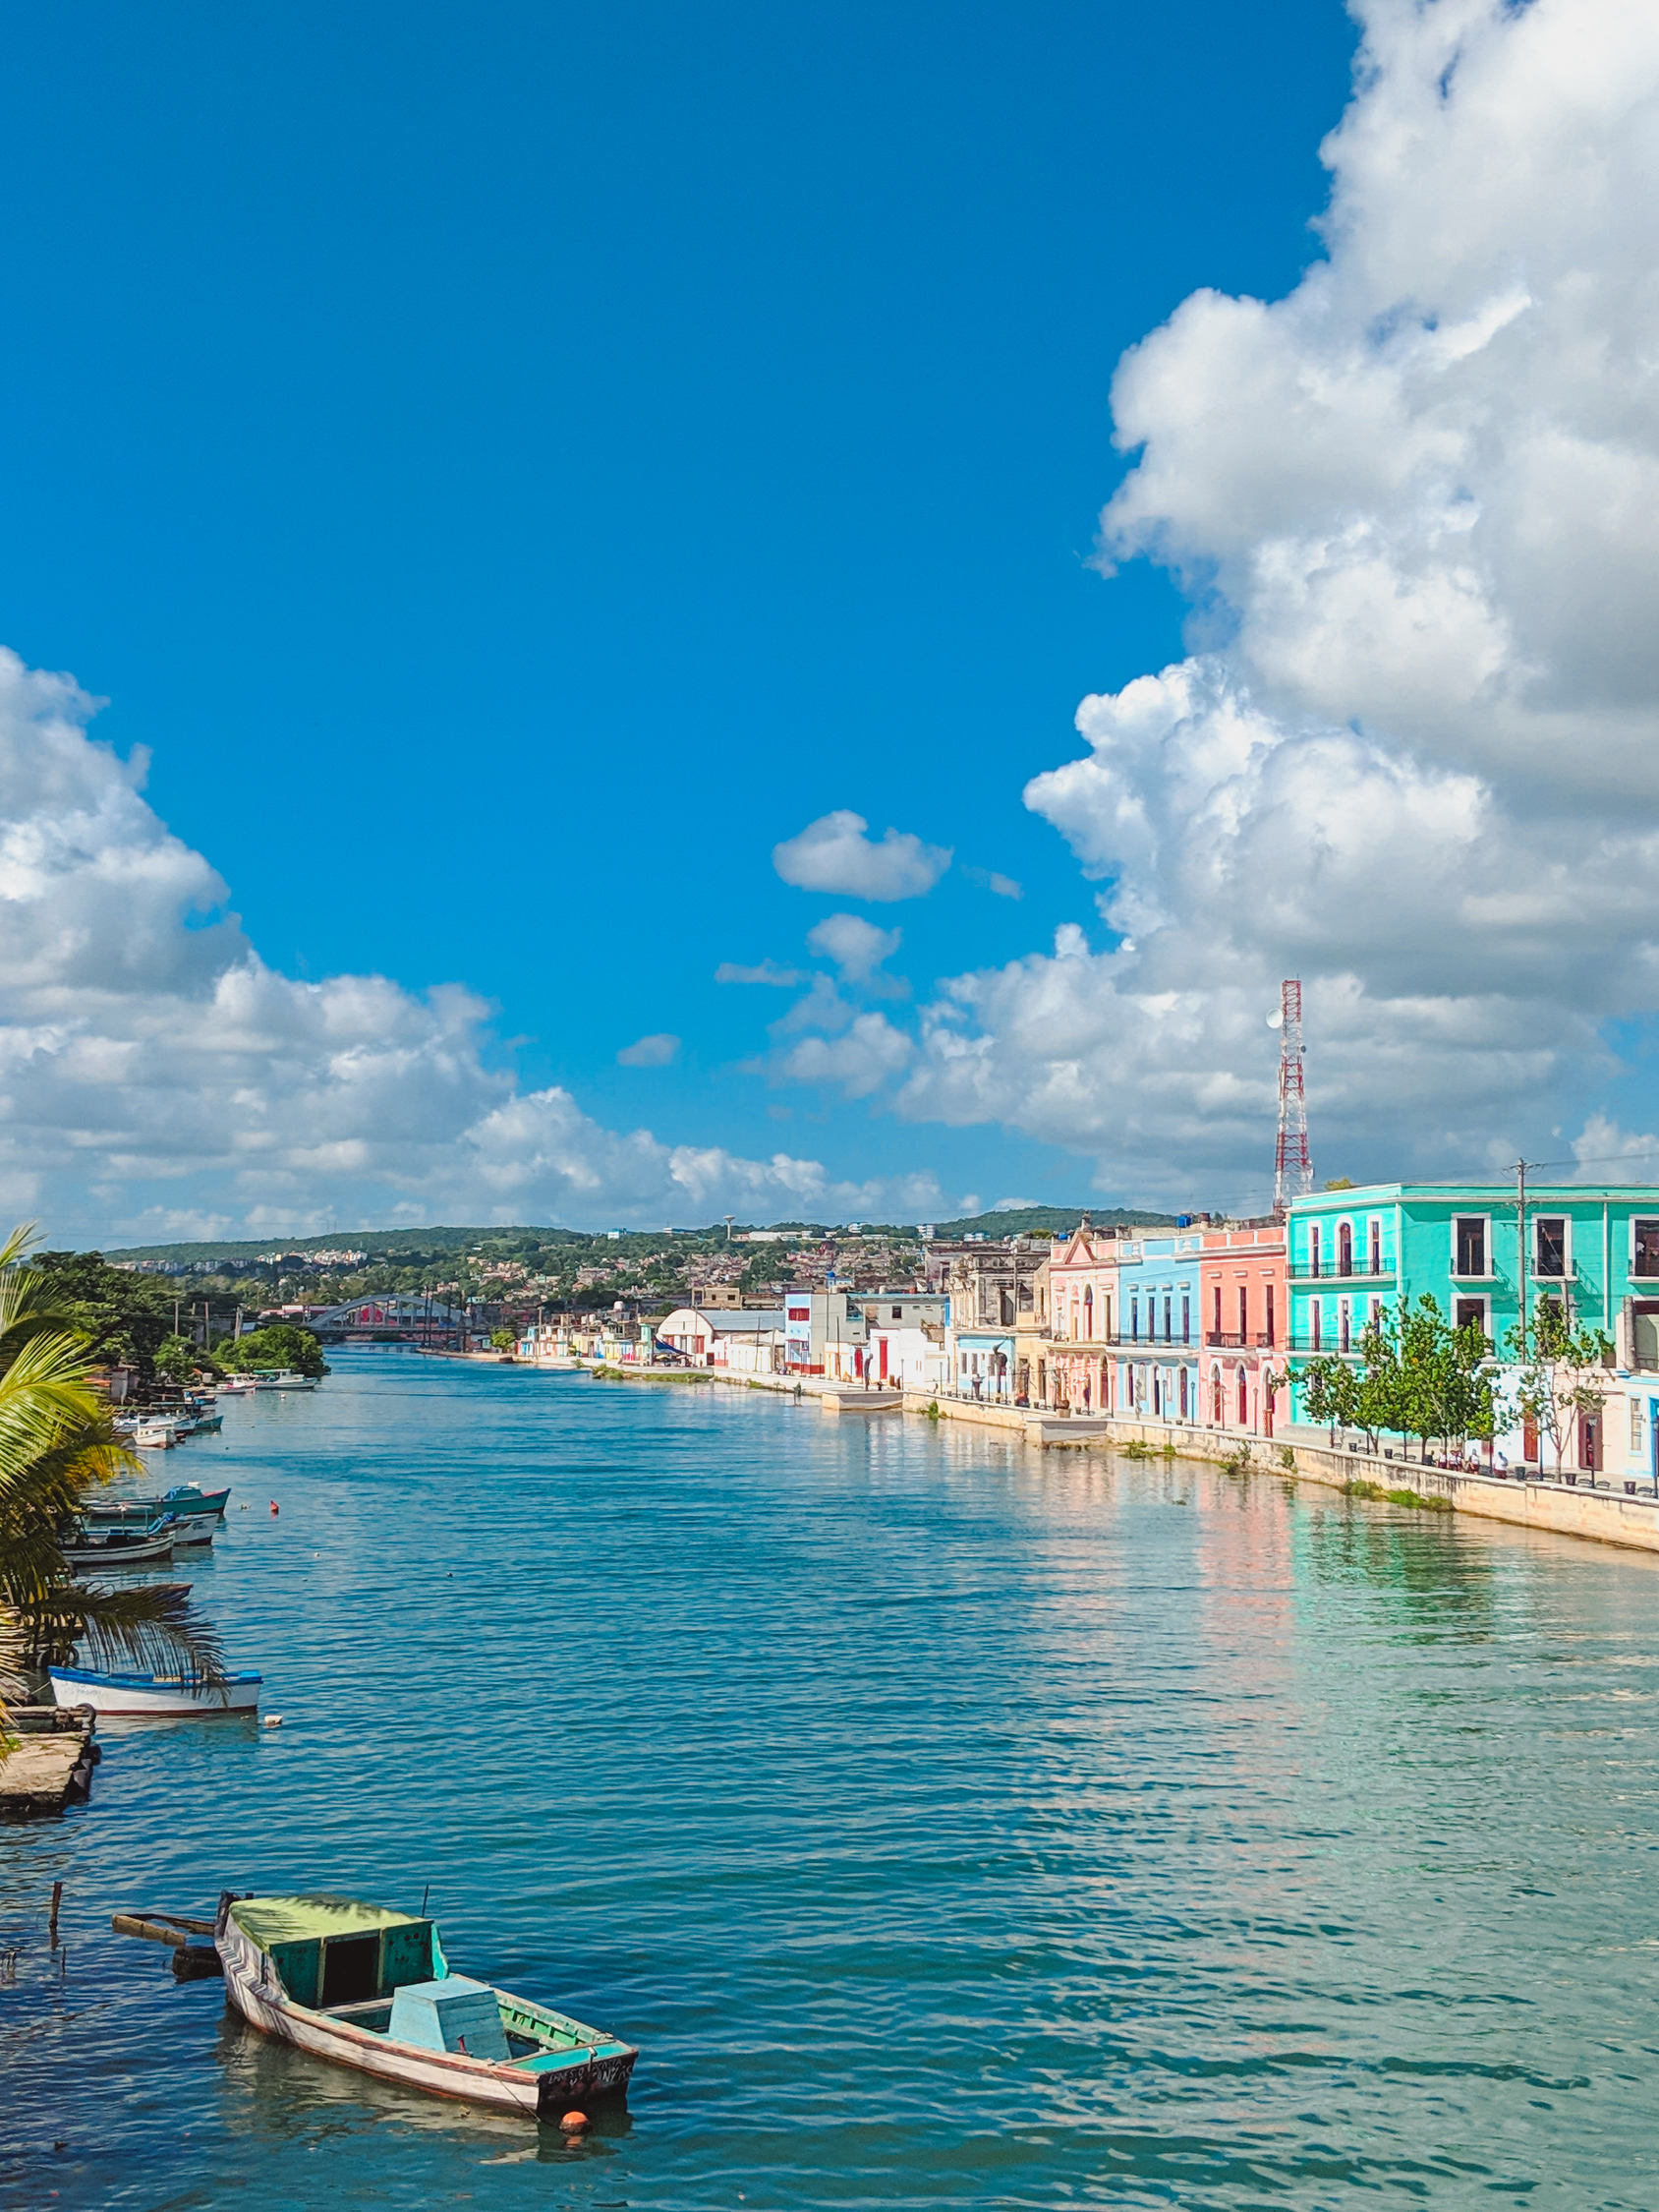 Matanzas Cuba river, known as the Venice of Cuba